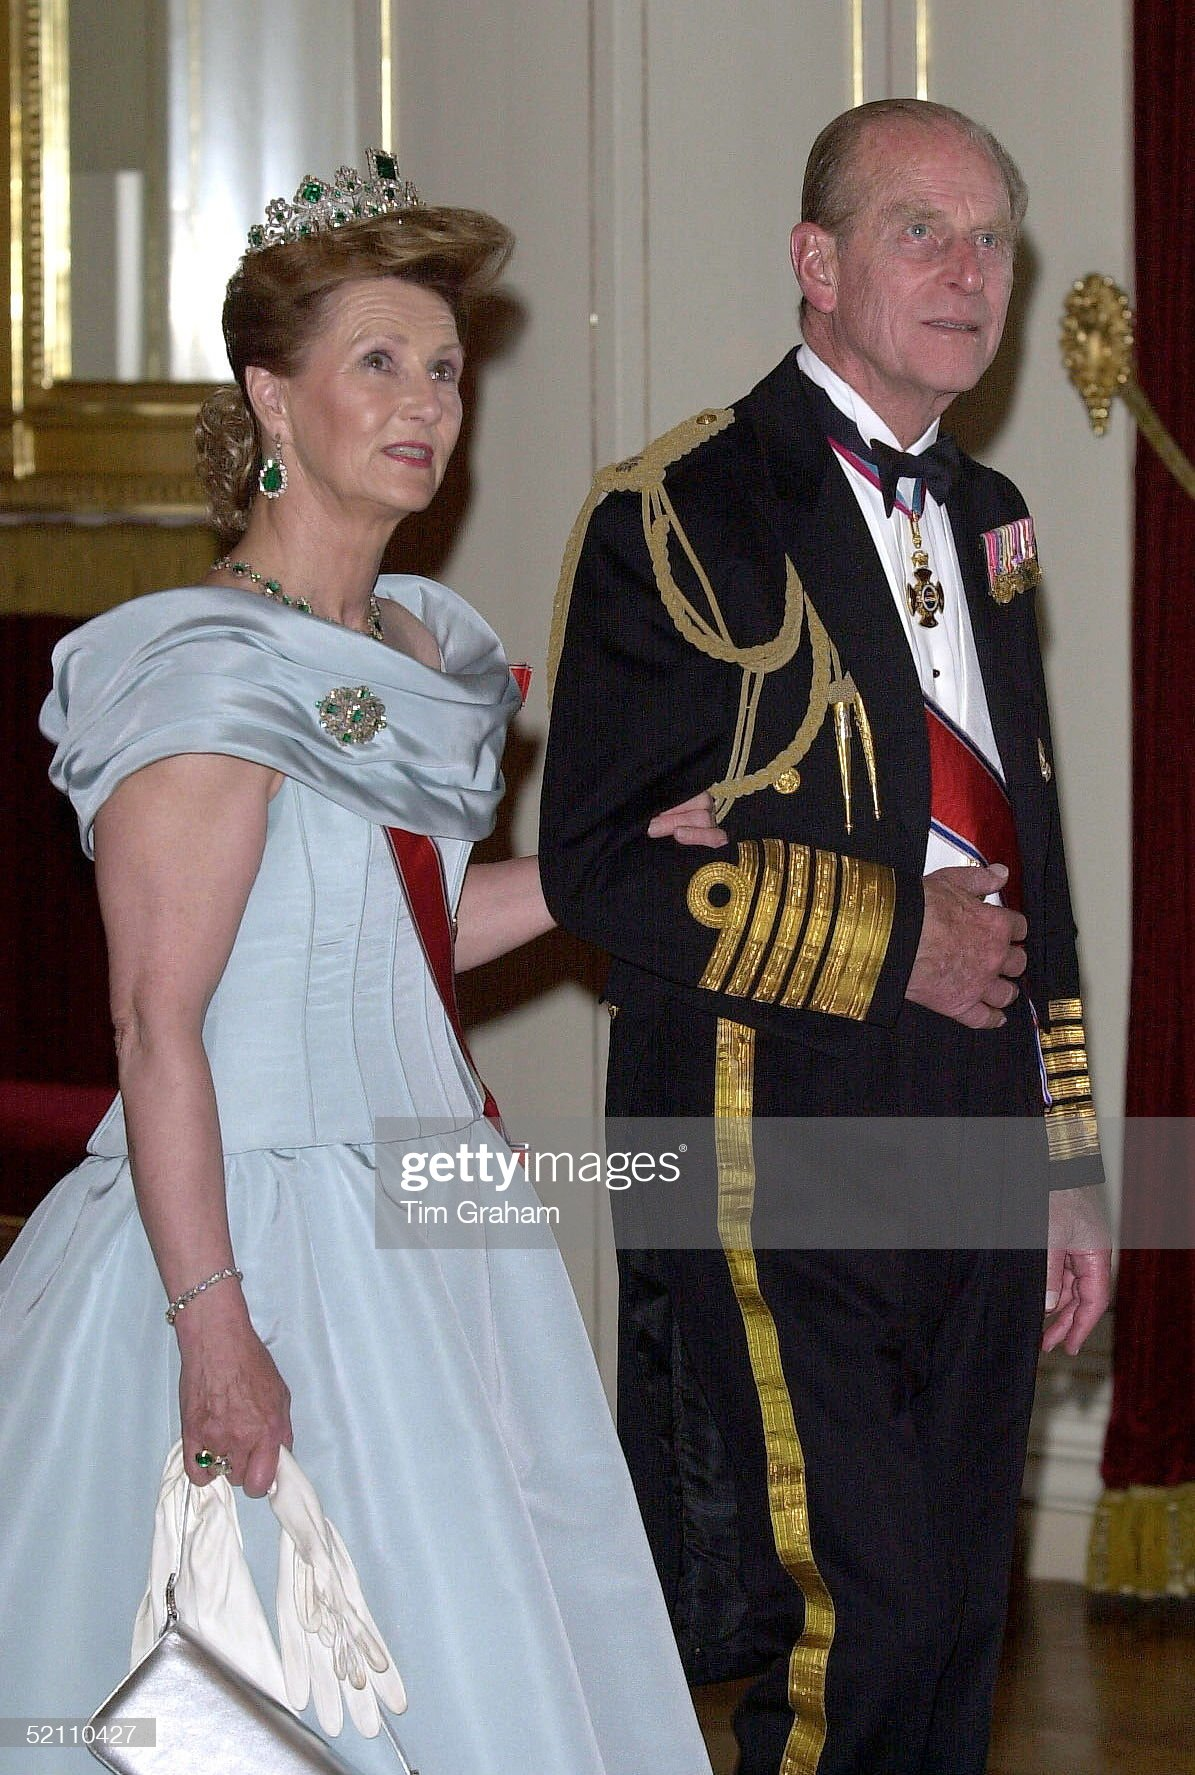 Prince Philip And Queen Sonja At Banquet : News Photo